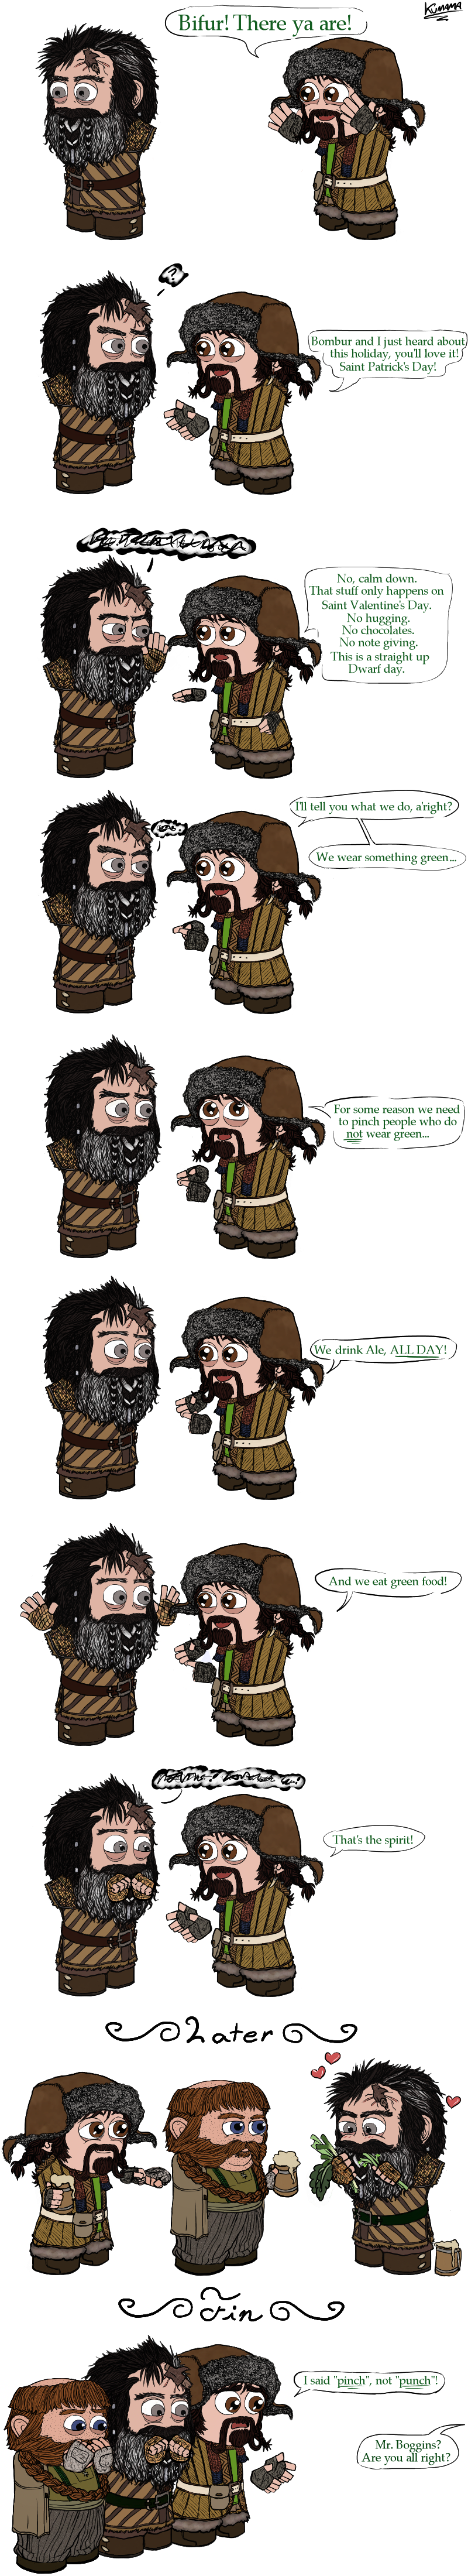 HOBBIT: Luck of the Axe by ~Kumama on deviantART. HAPPY ST PATRICKS DAY!! :D From the loveable guys